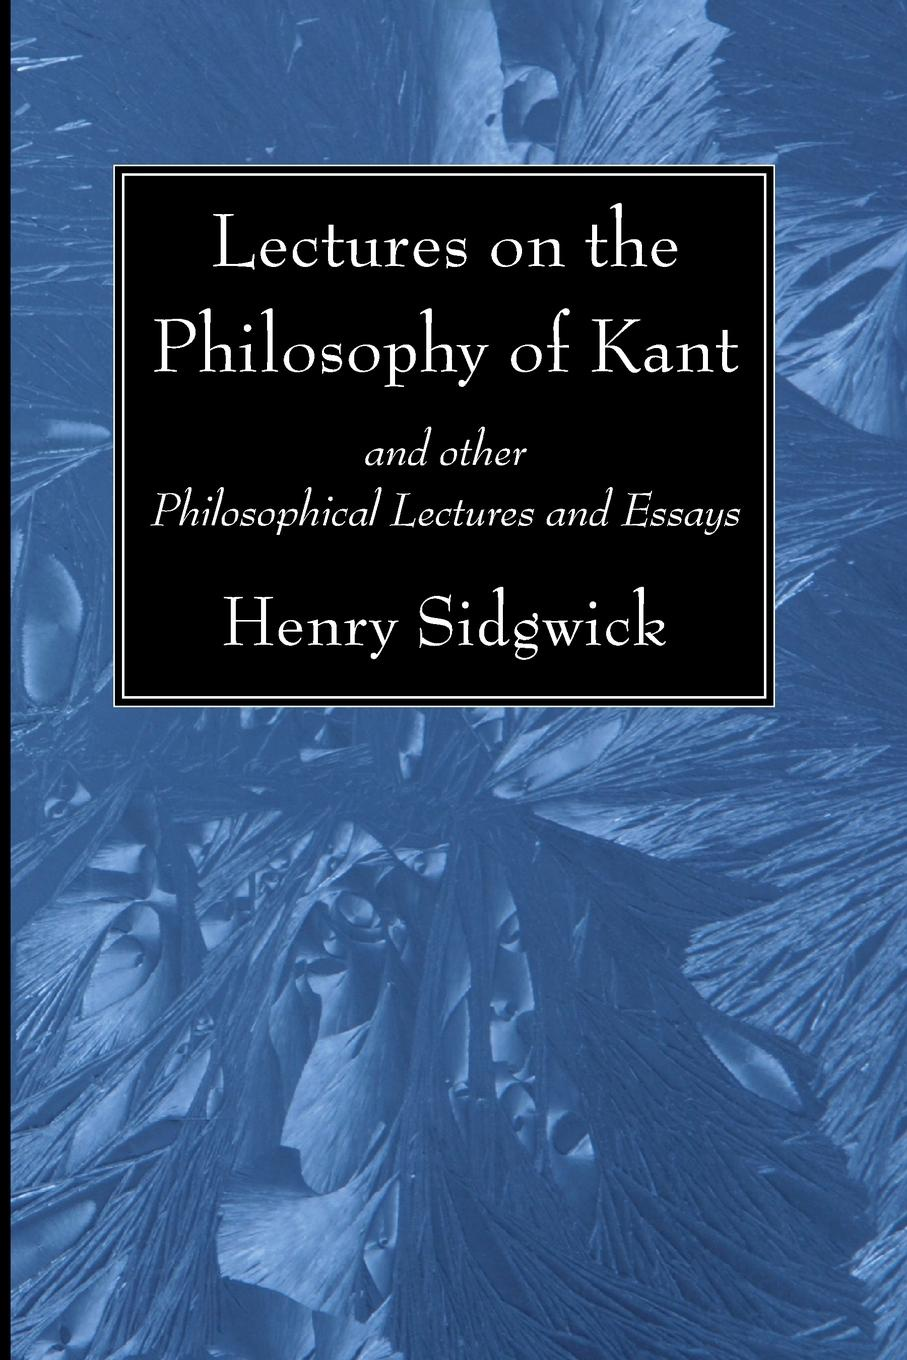 Henry Sidgwick Lectures on the Philosophy of Kant